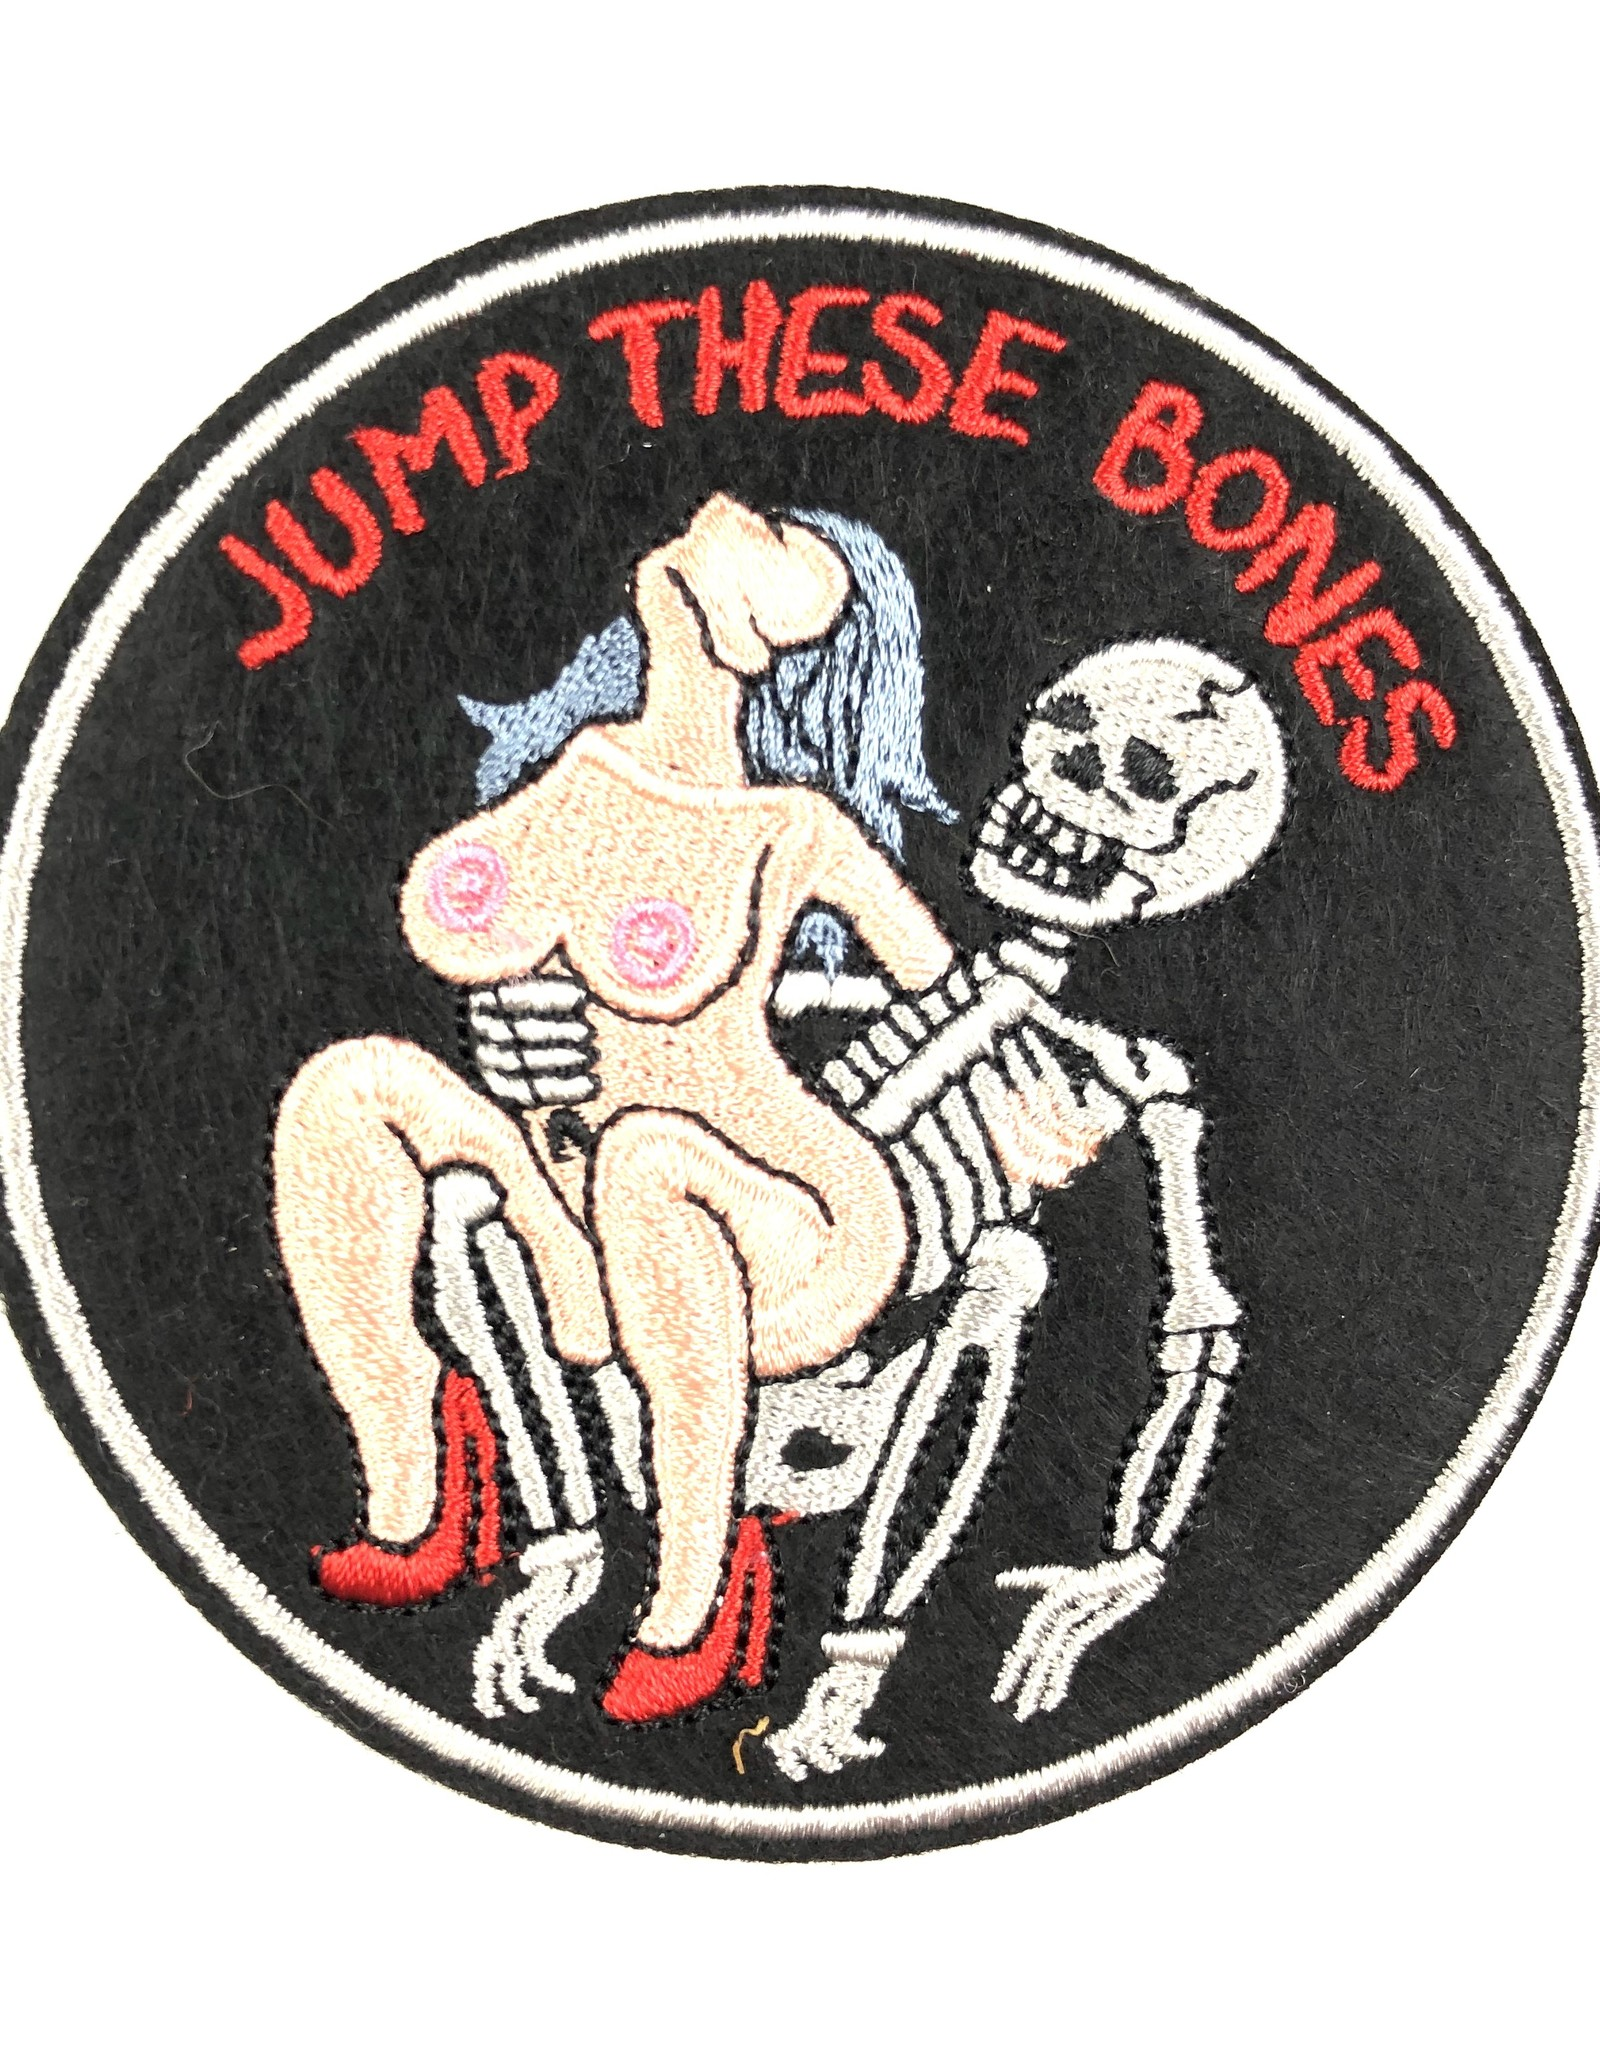 DIRTY NEEDLE JUMP THESE BONES RE-ISSUE PATCH